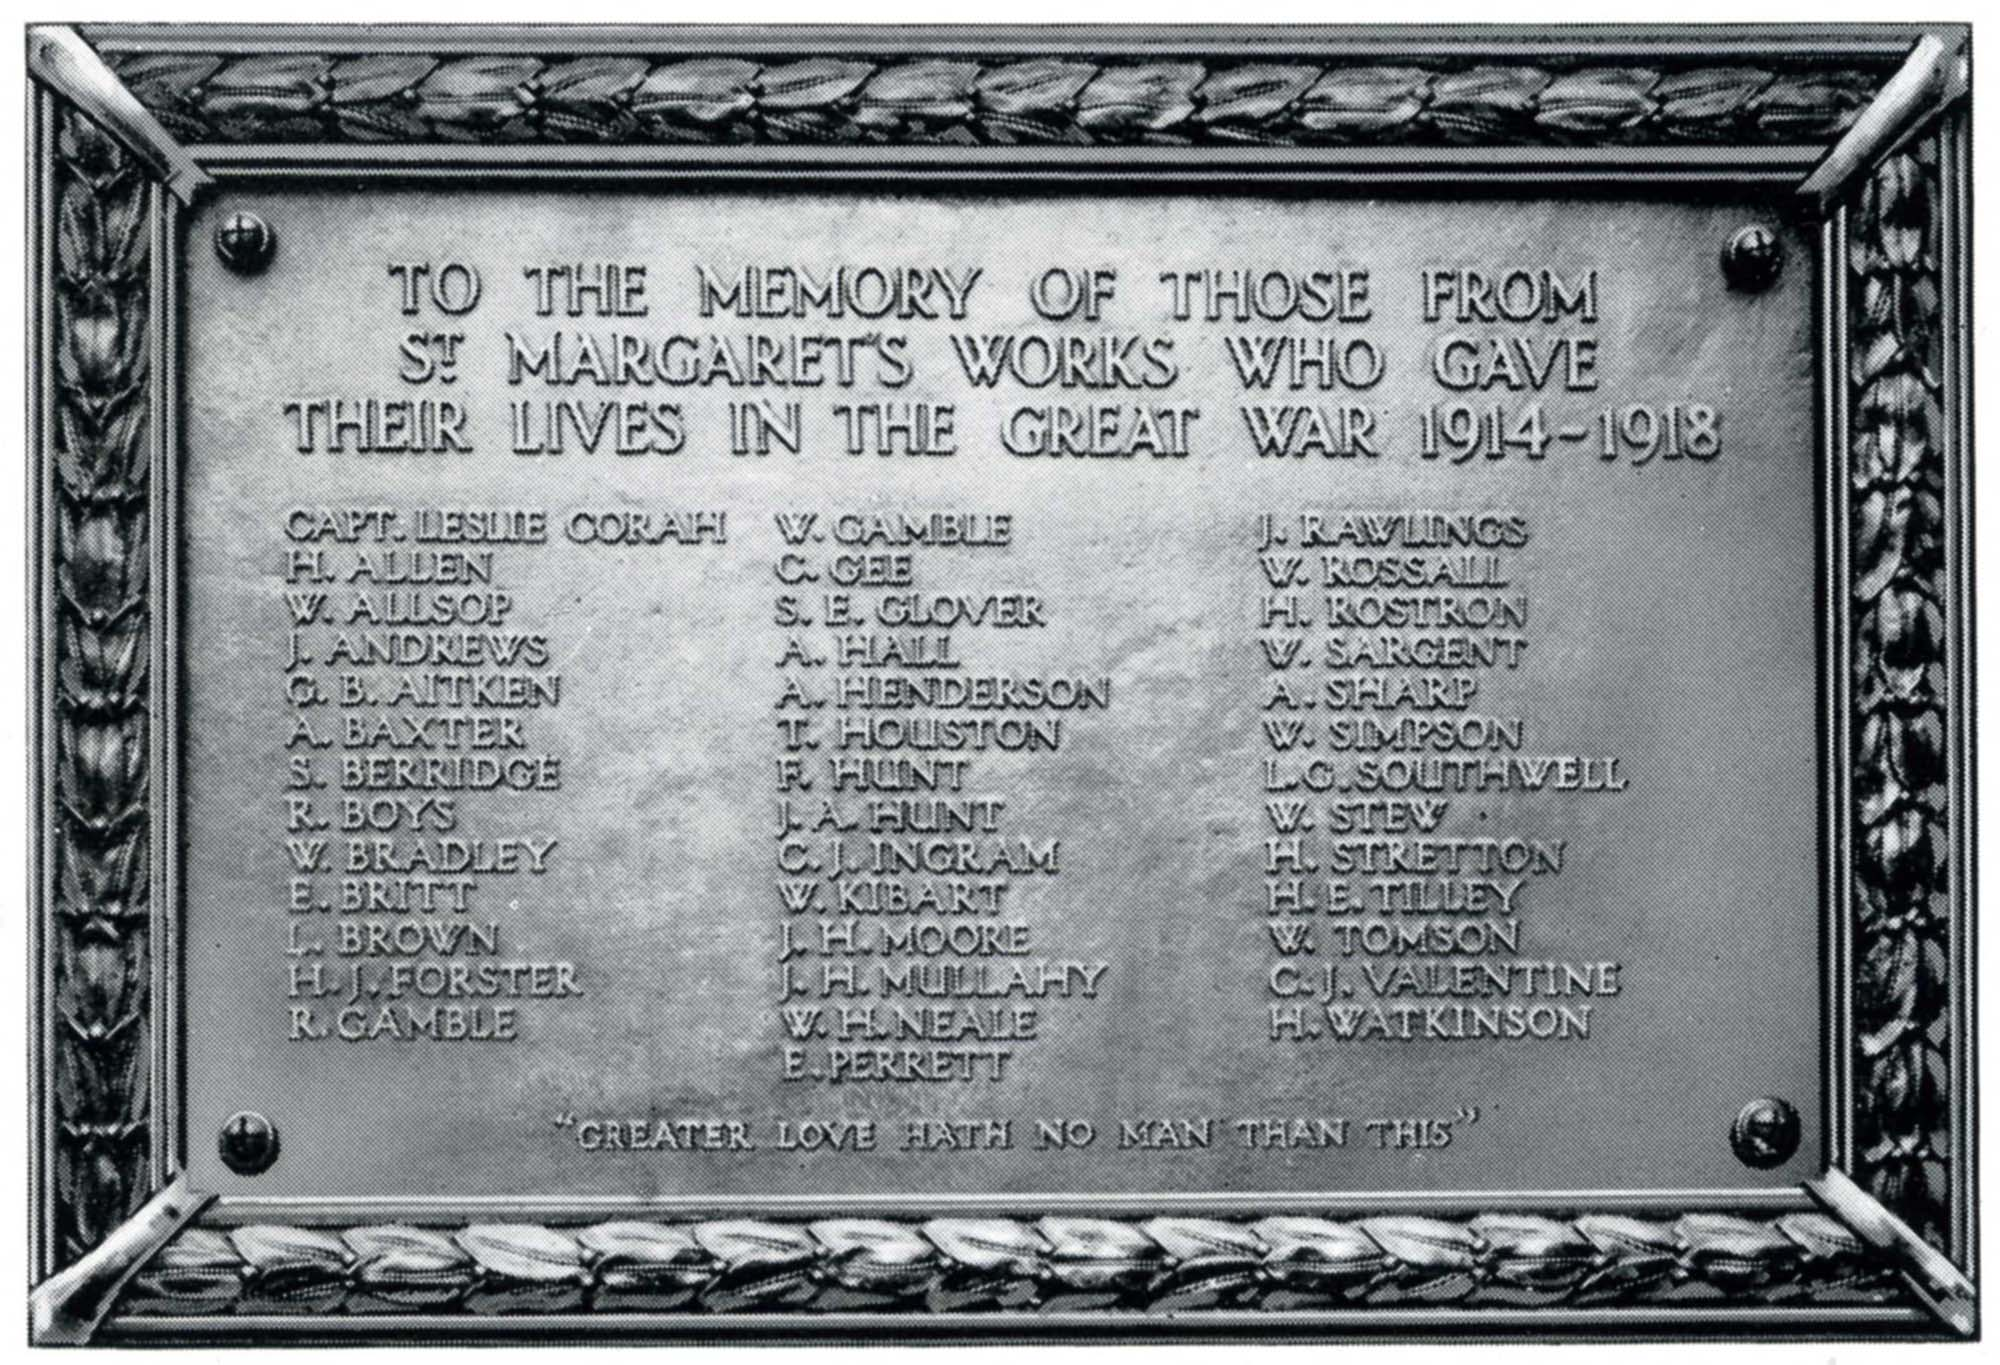 Memorial plaque for employees of the Corah's St Margaret's Works killed in the First World War -